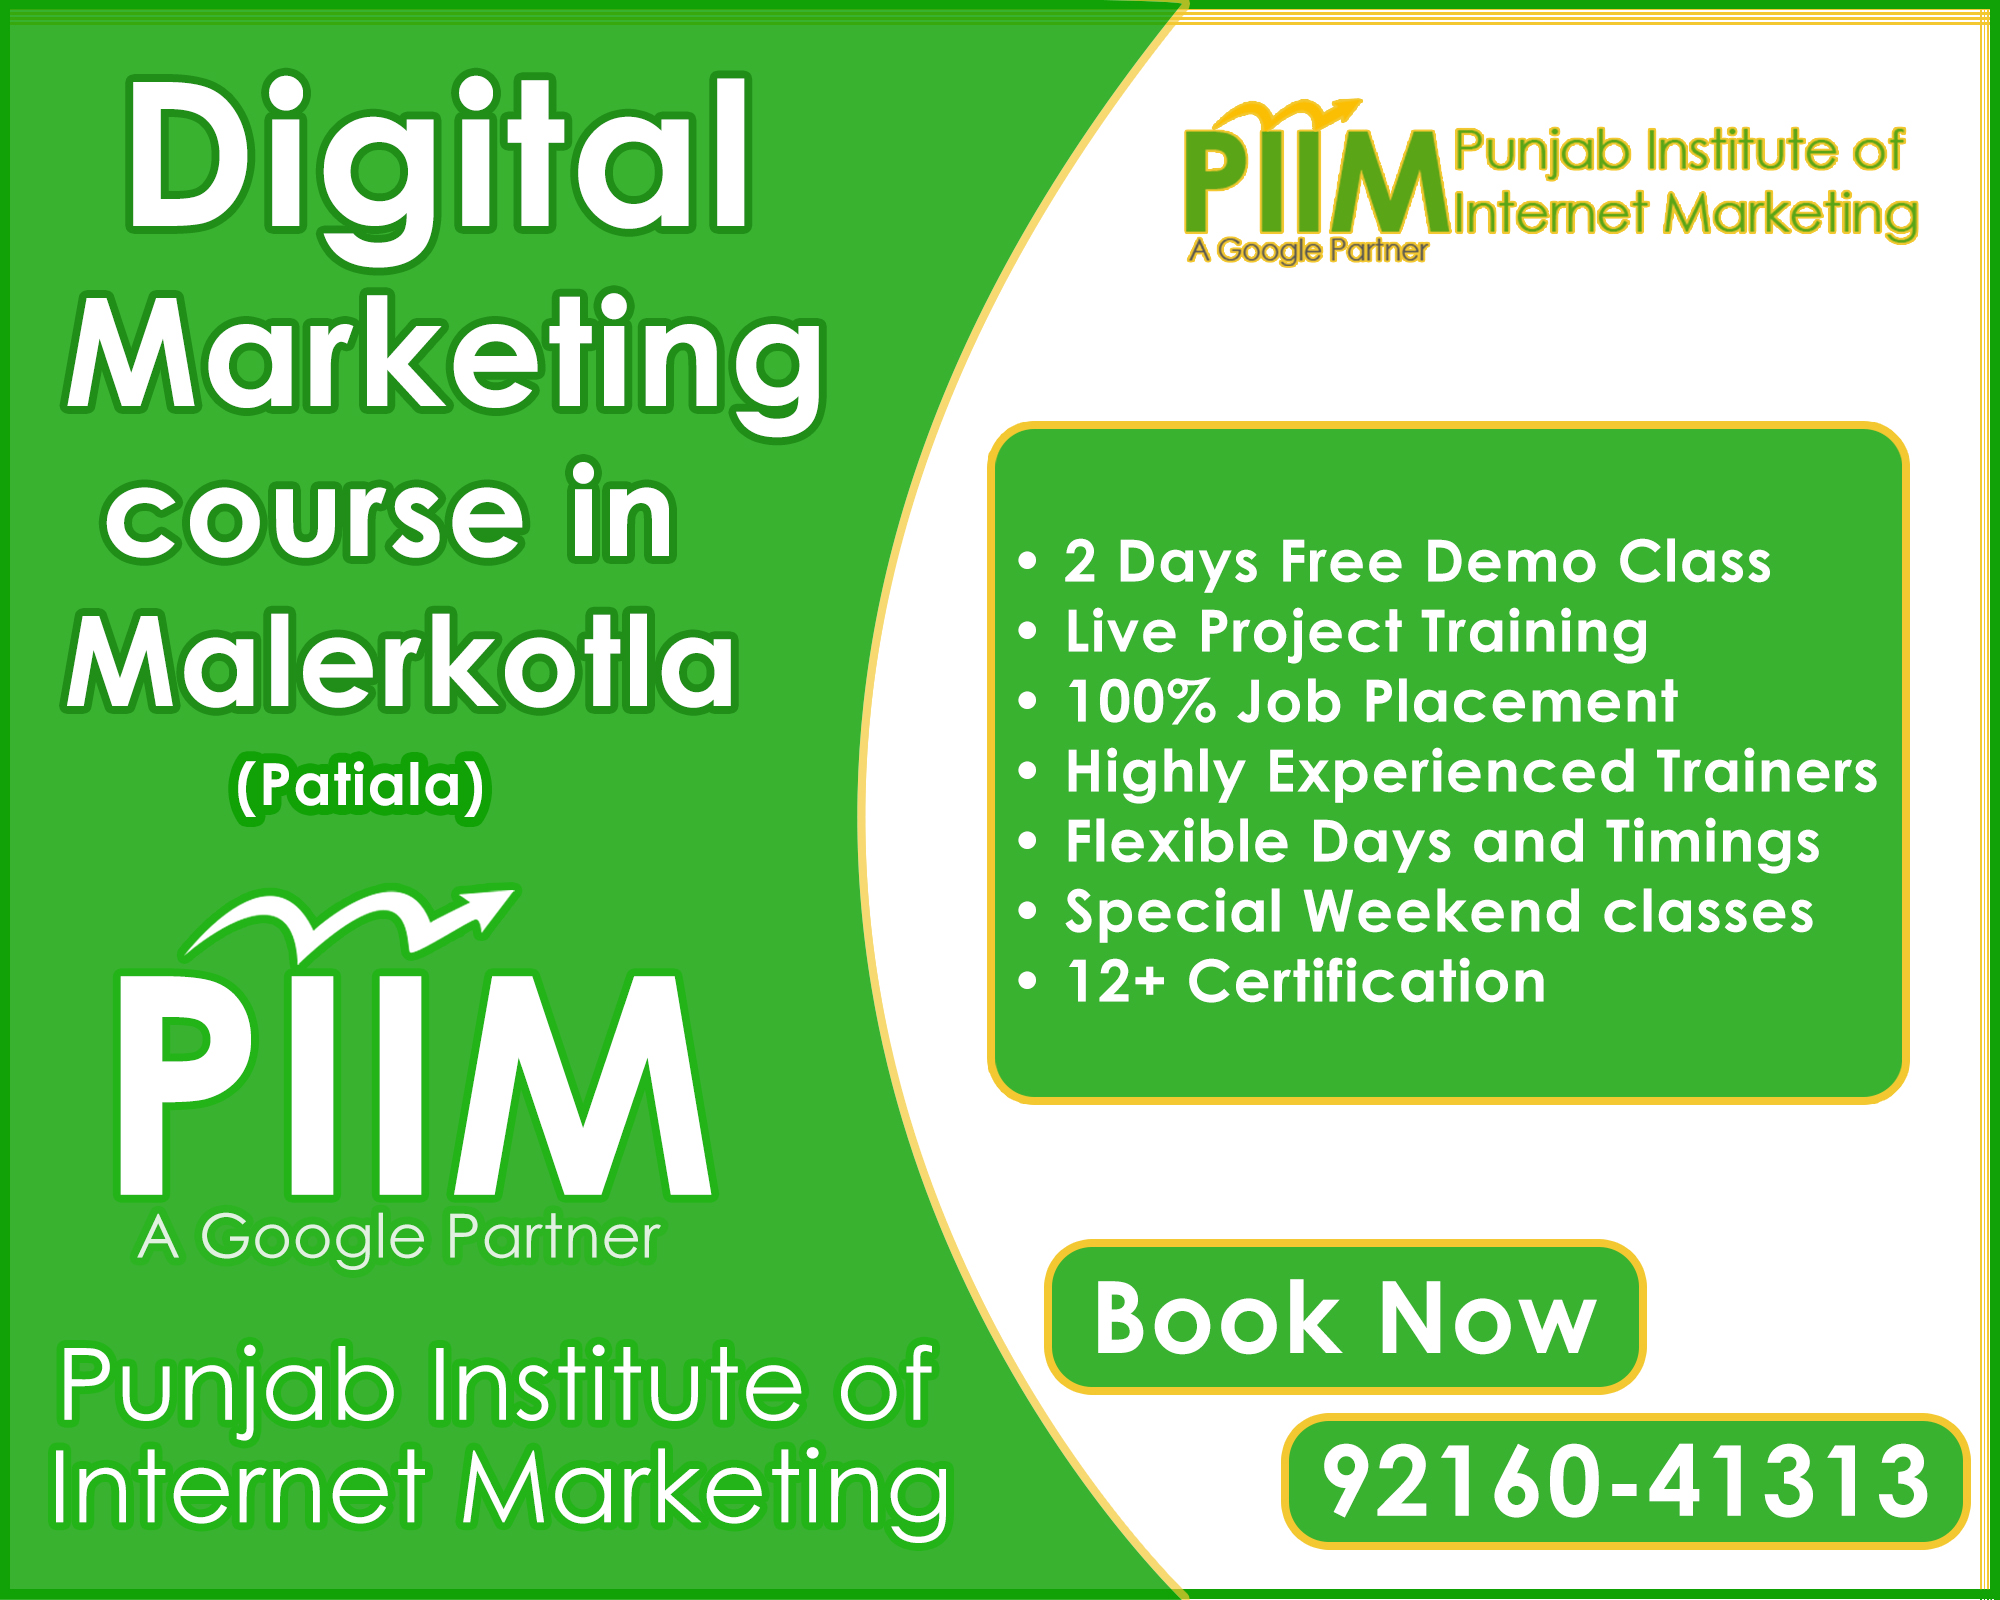 Digital Marketing Course in Malerkotla